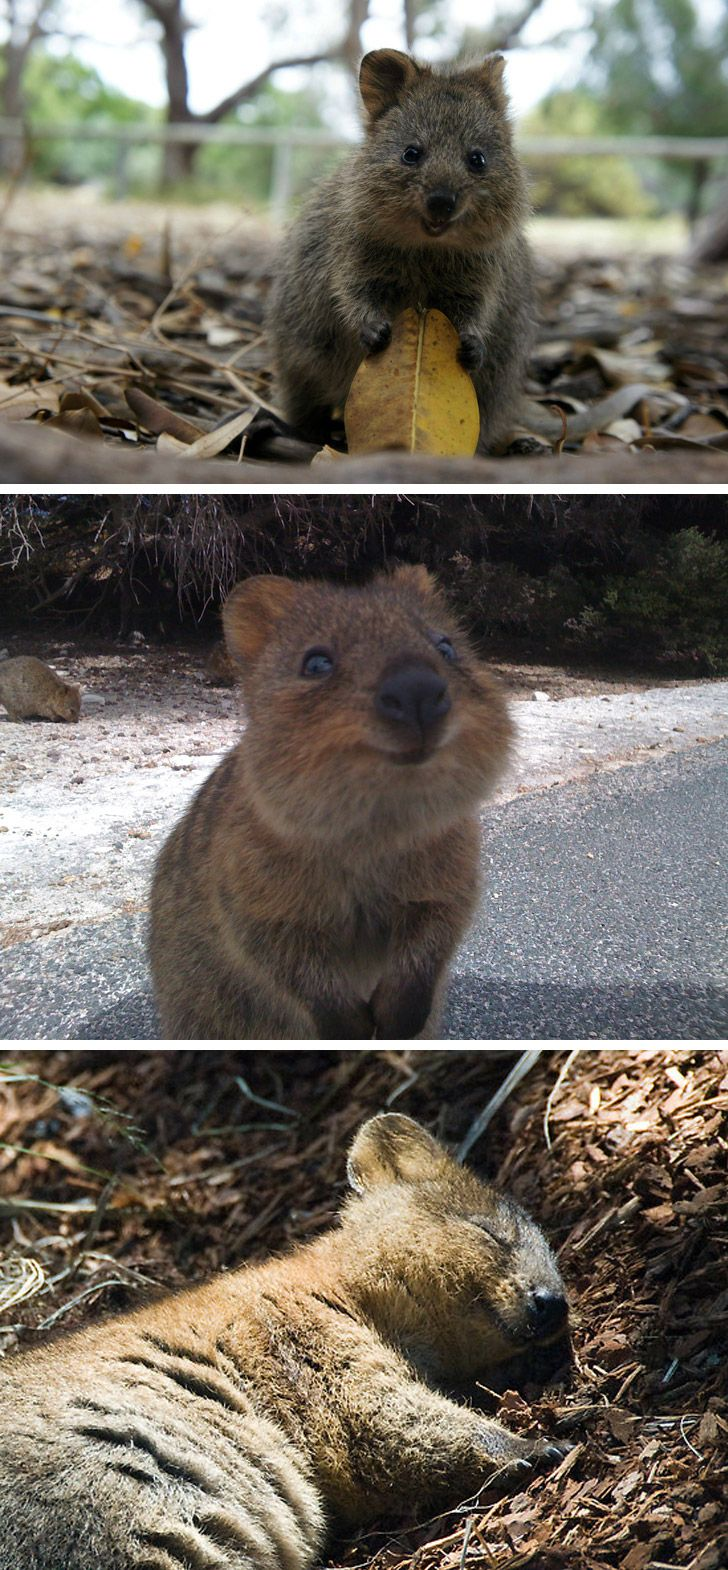 World's happiest animal? The quokka. HE IS SO CUTE!! I want one.